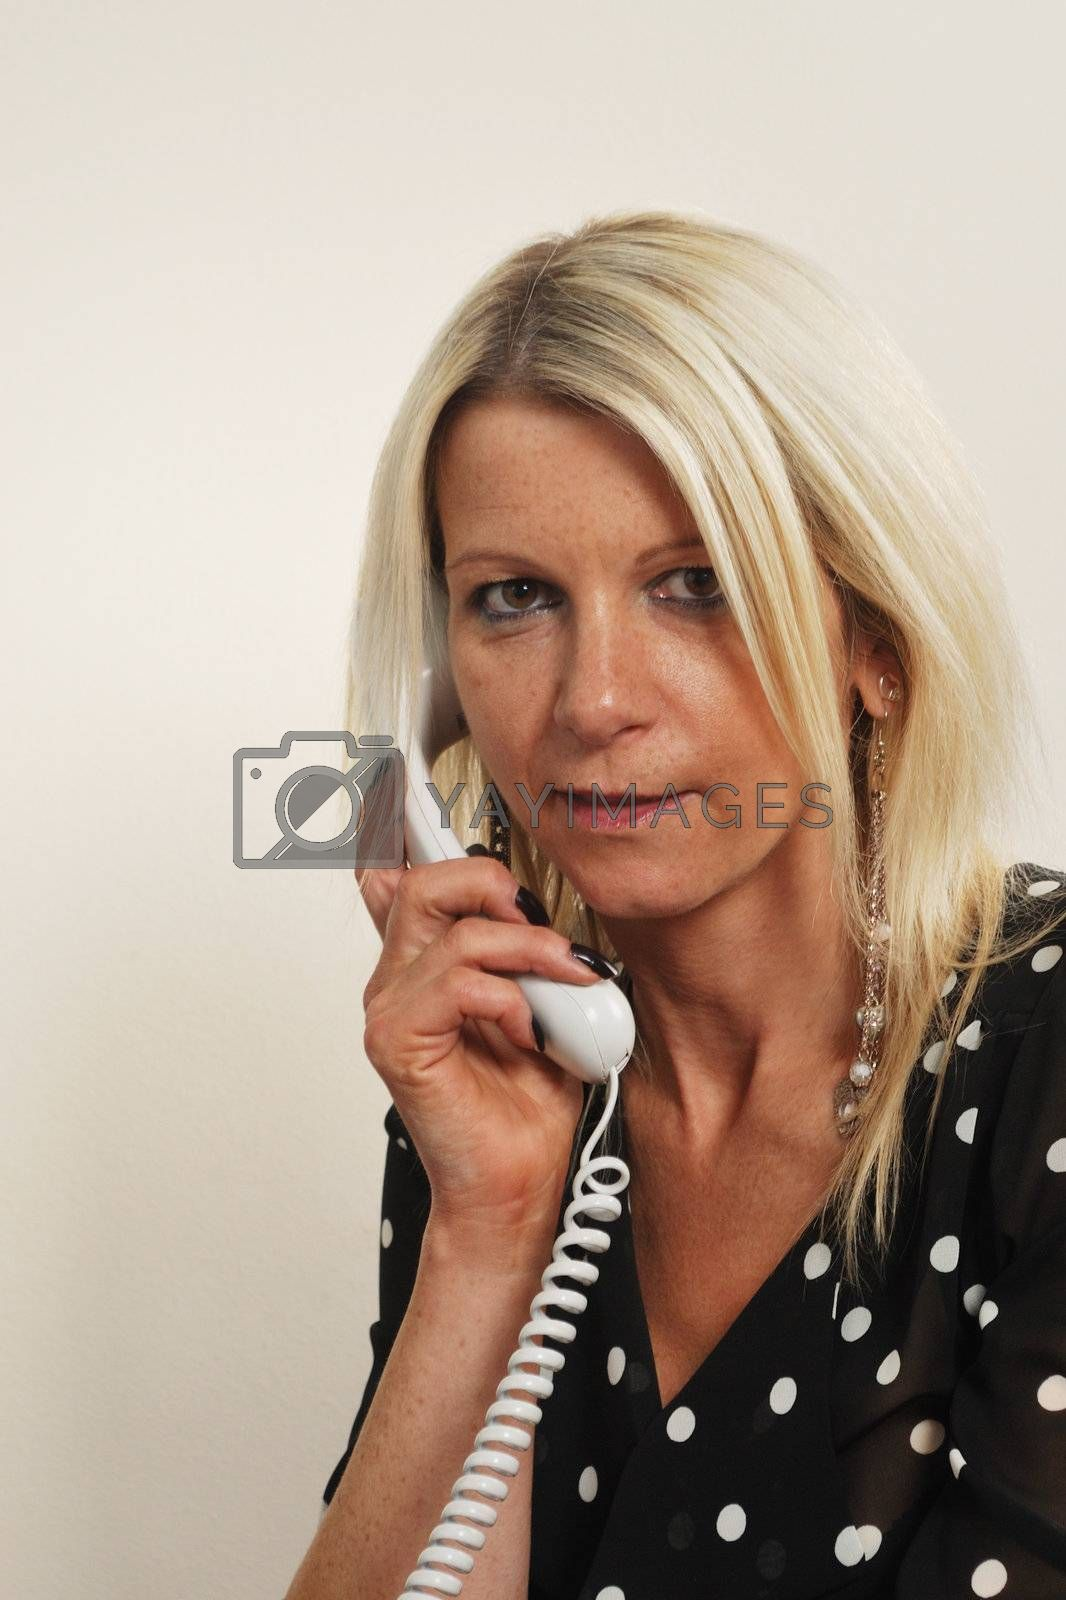 Blonde Businesswoman on phone listening